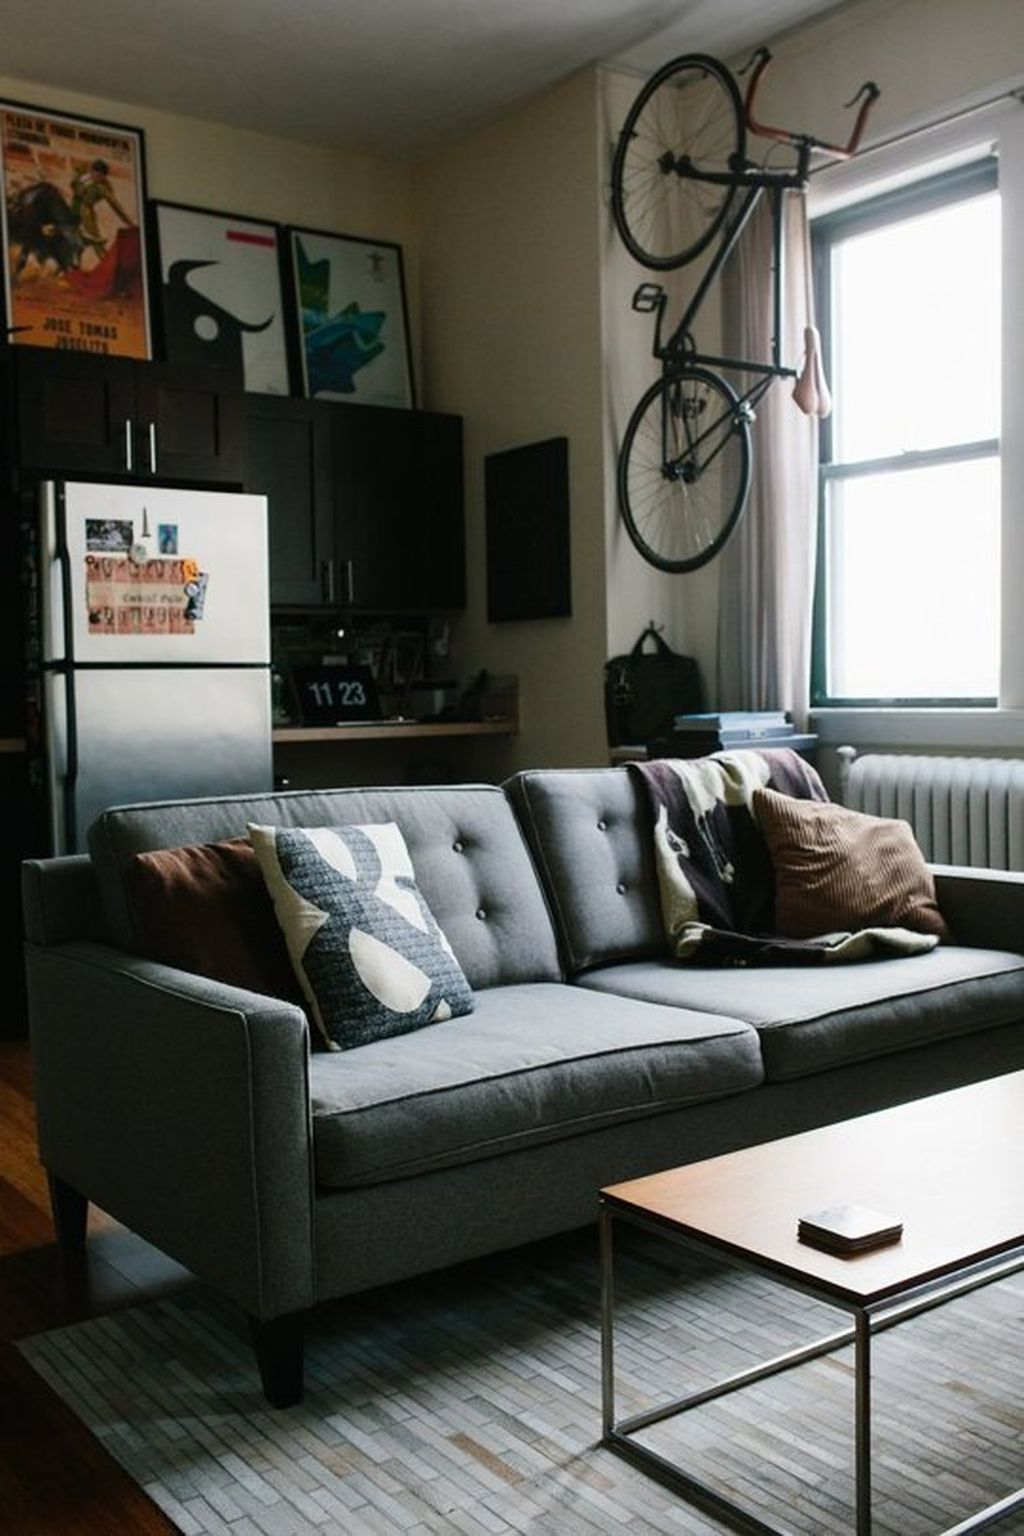 Inspiring And Affordable Decoration Ideas For Small Apartment 19